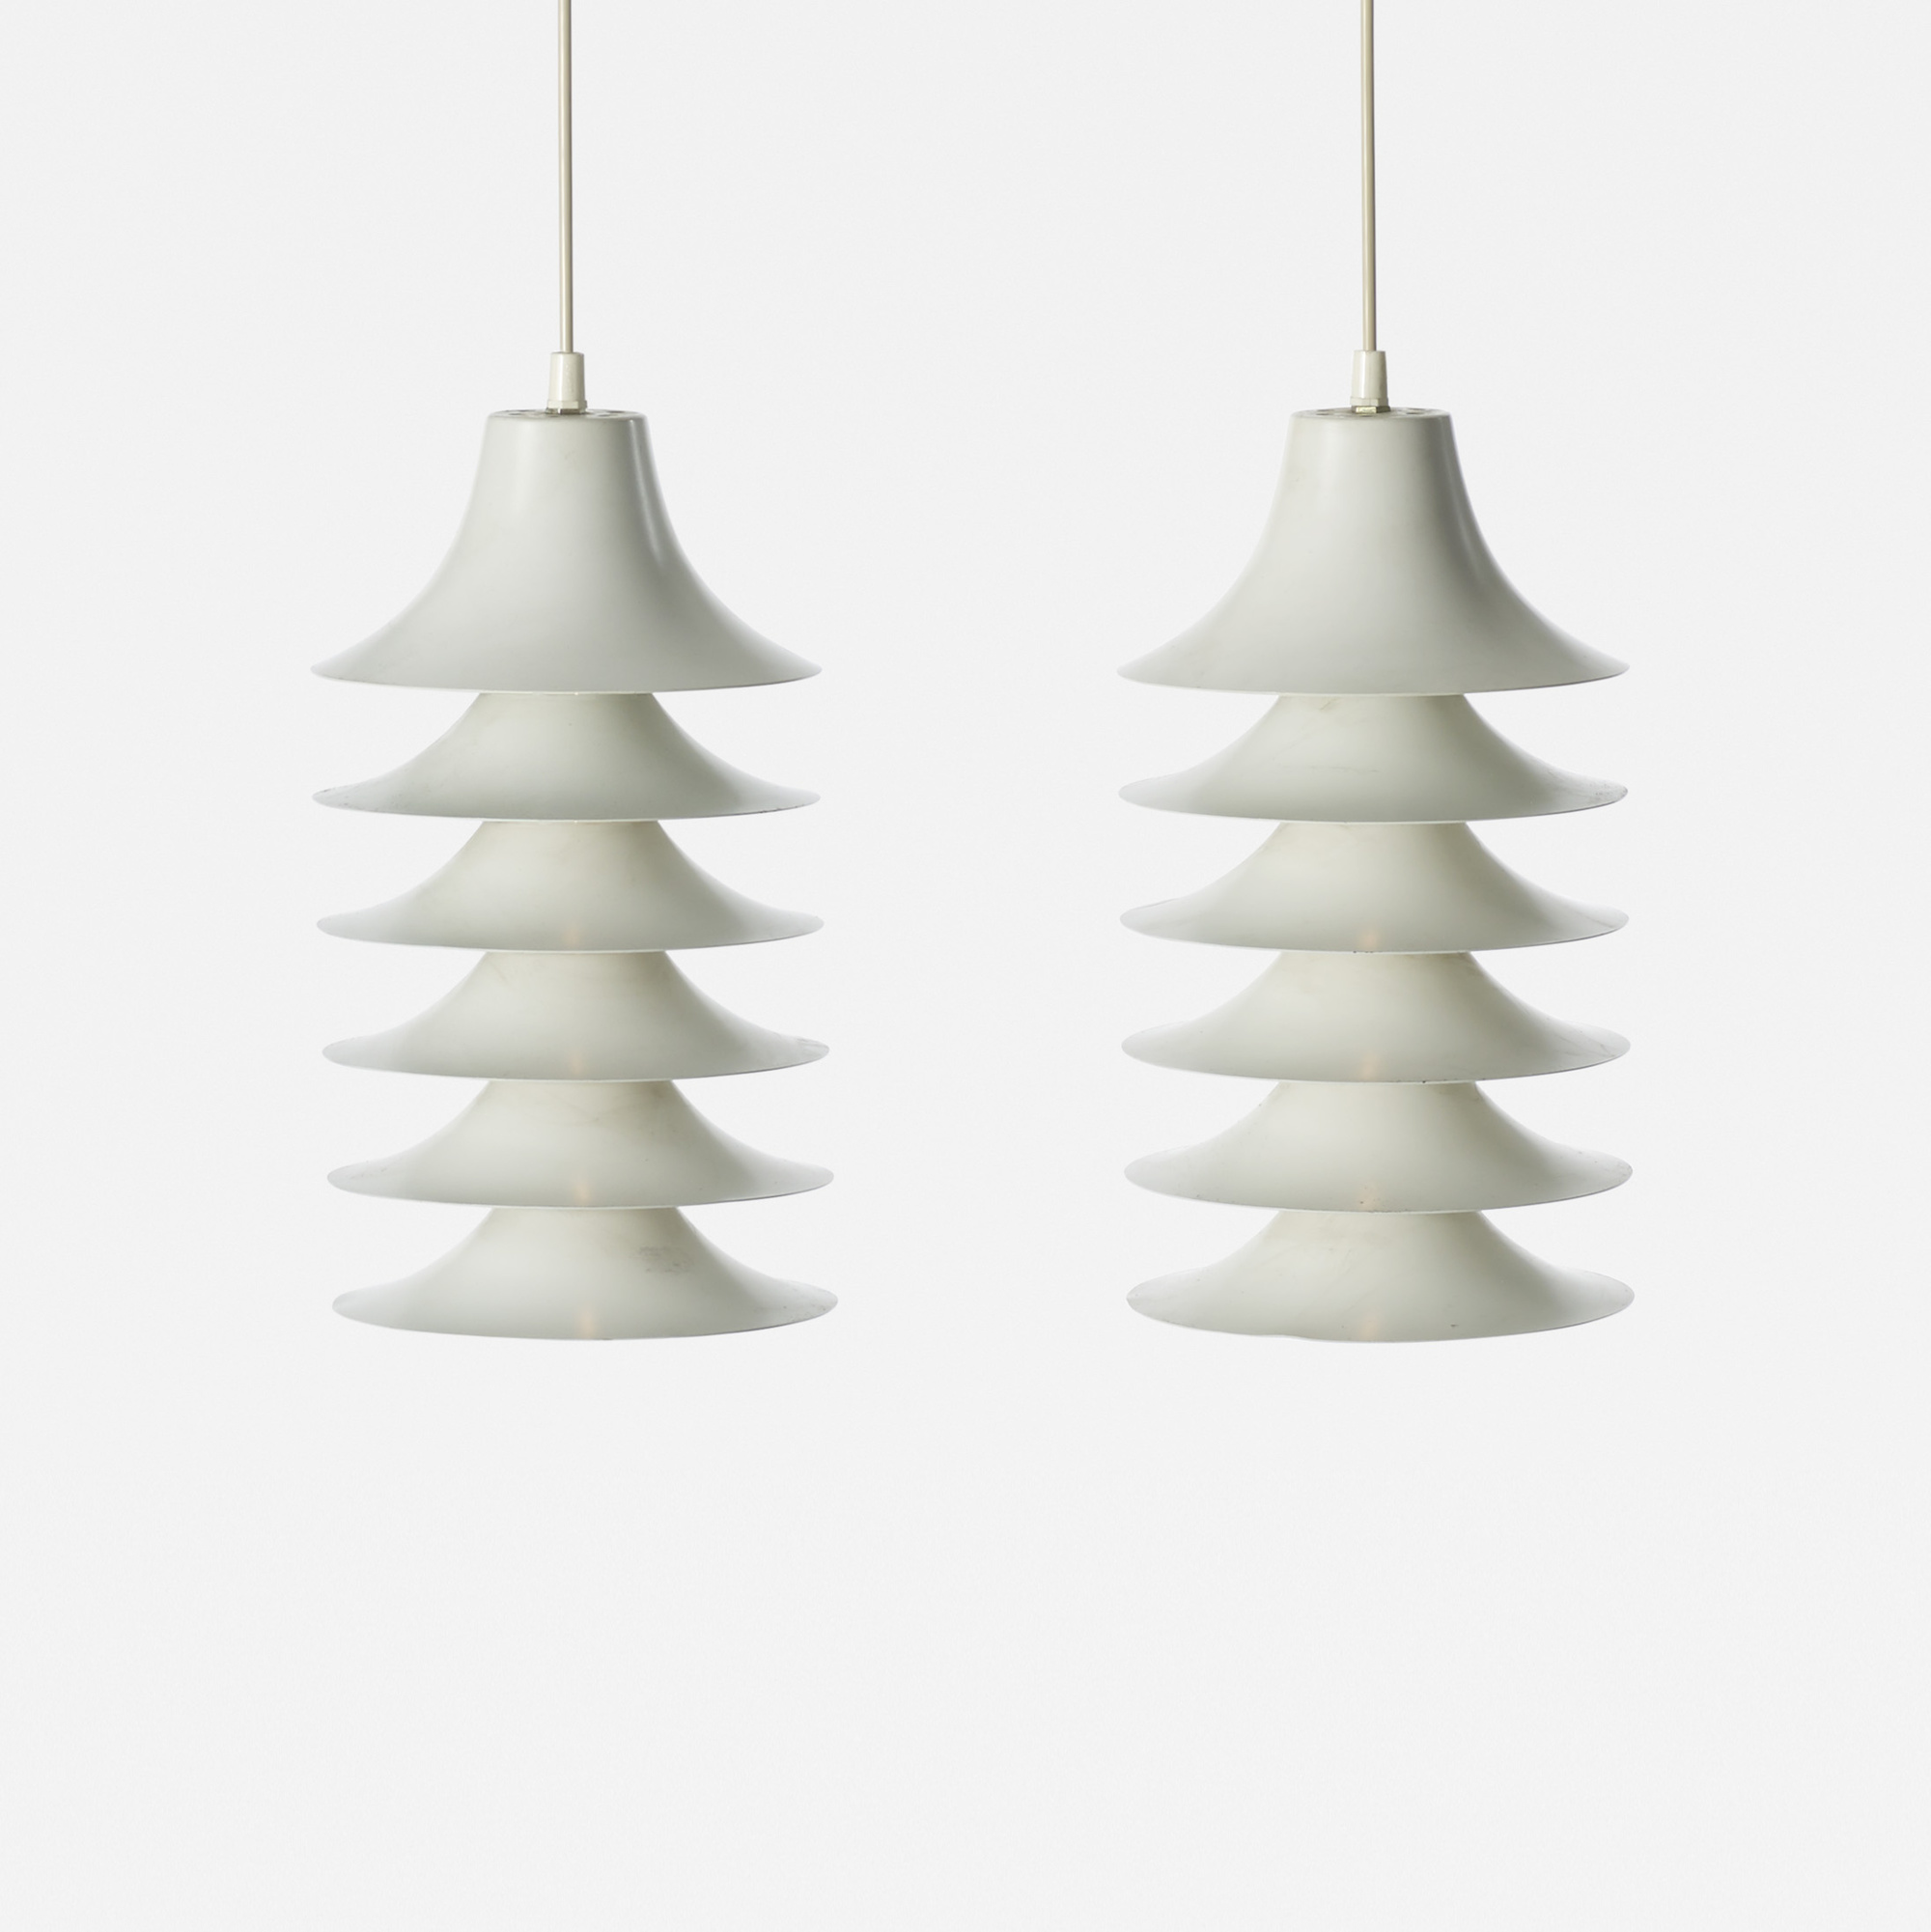 179: Jørgen Gammelgaard / Tip-Top pendant lamps, pair (1 of 1)